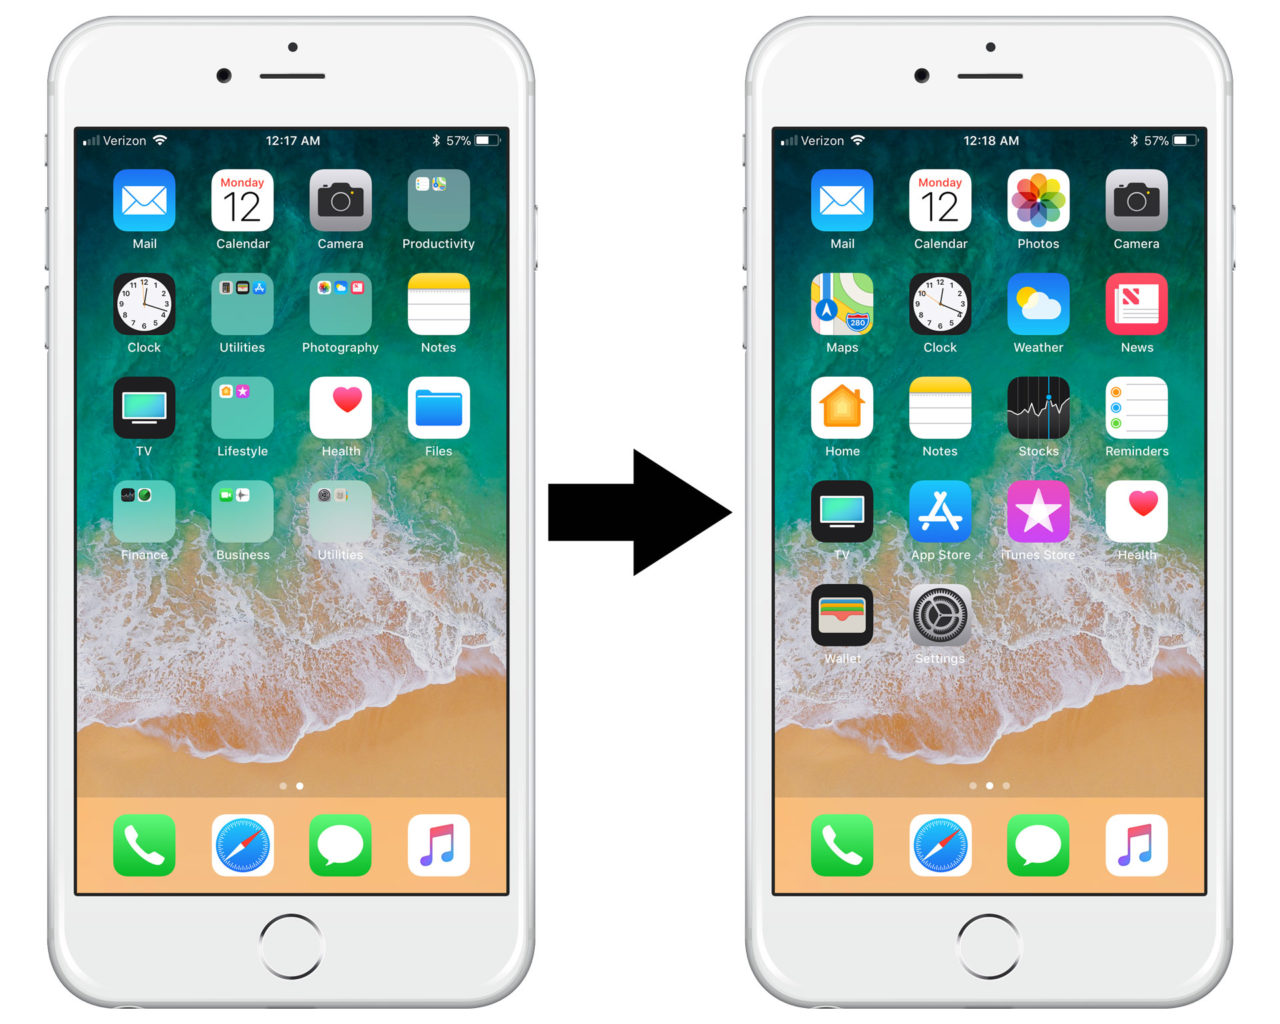 Clean Up Your iPhone Apps: How to Reset the Home Screen Layout